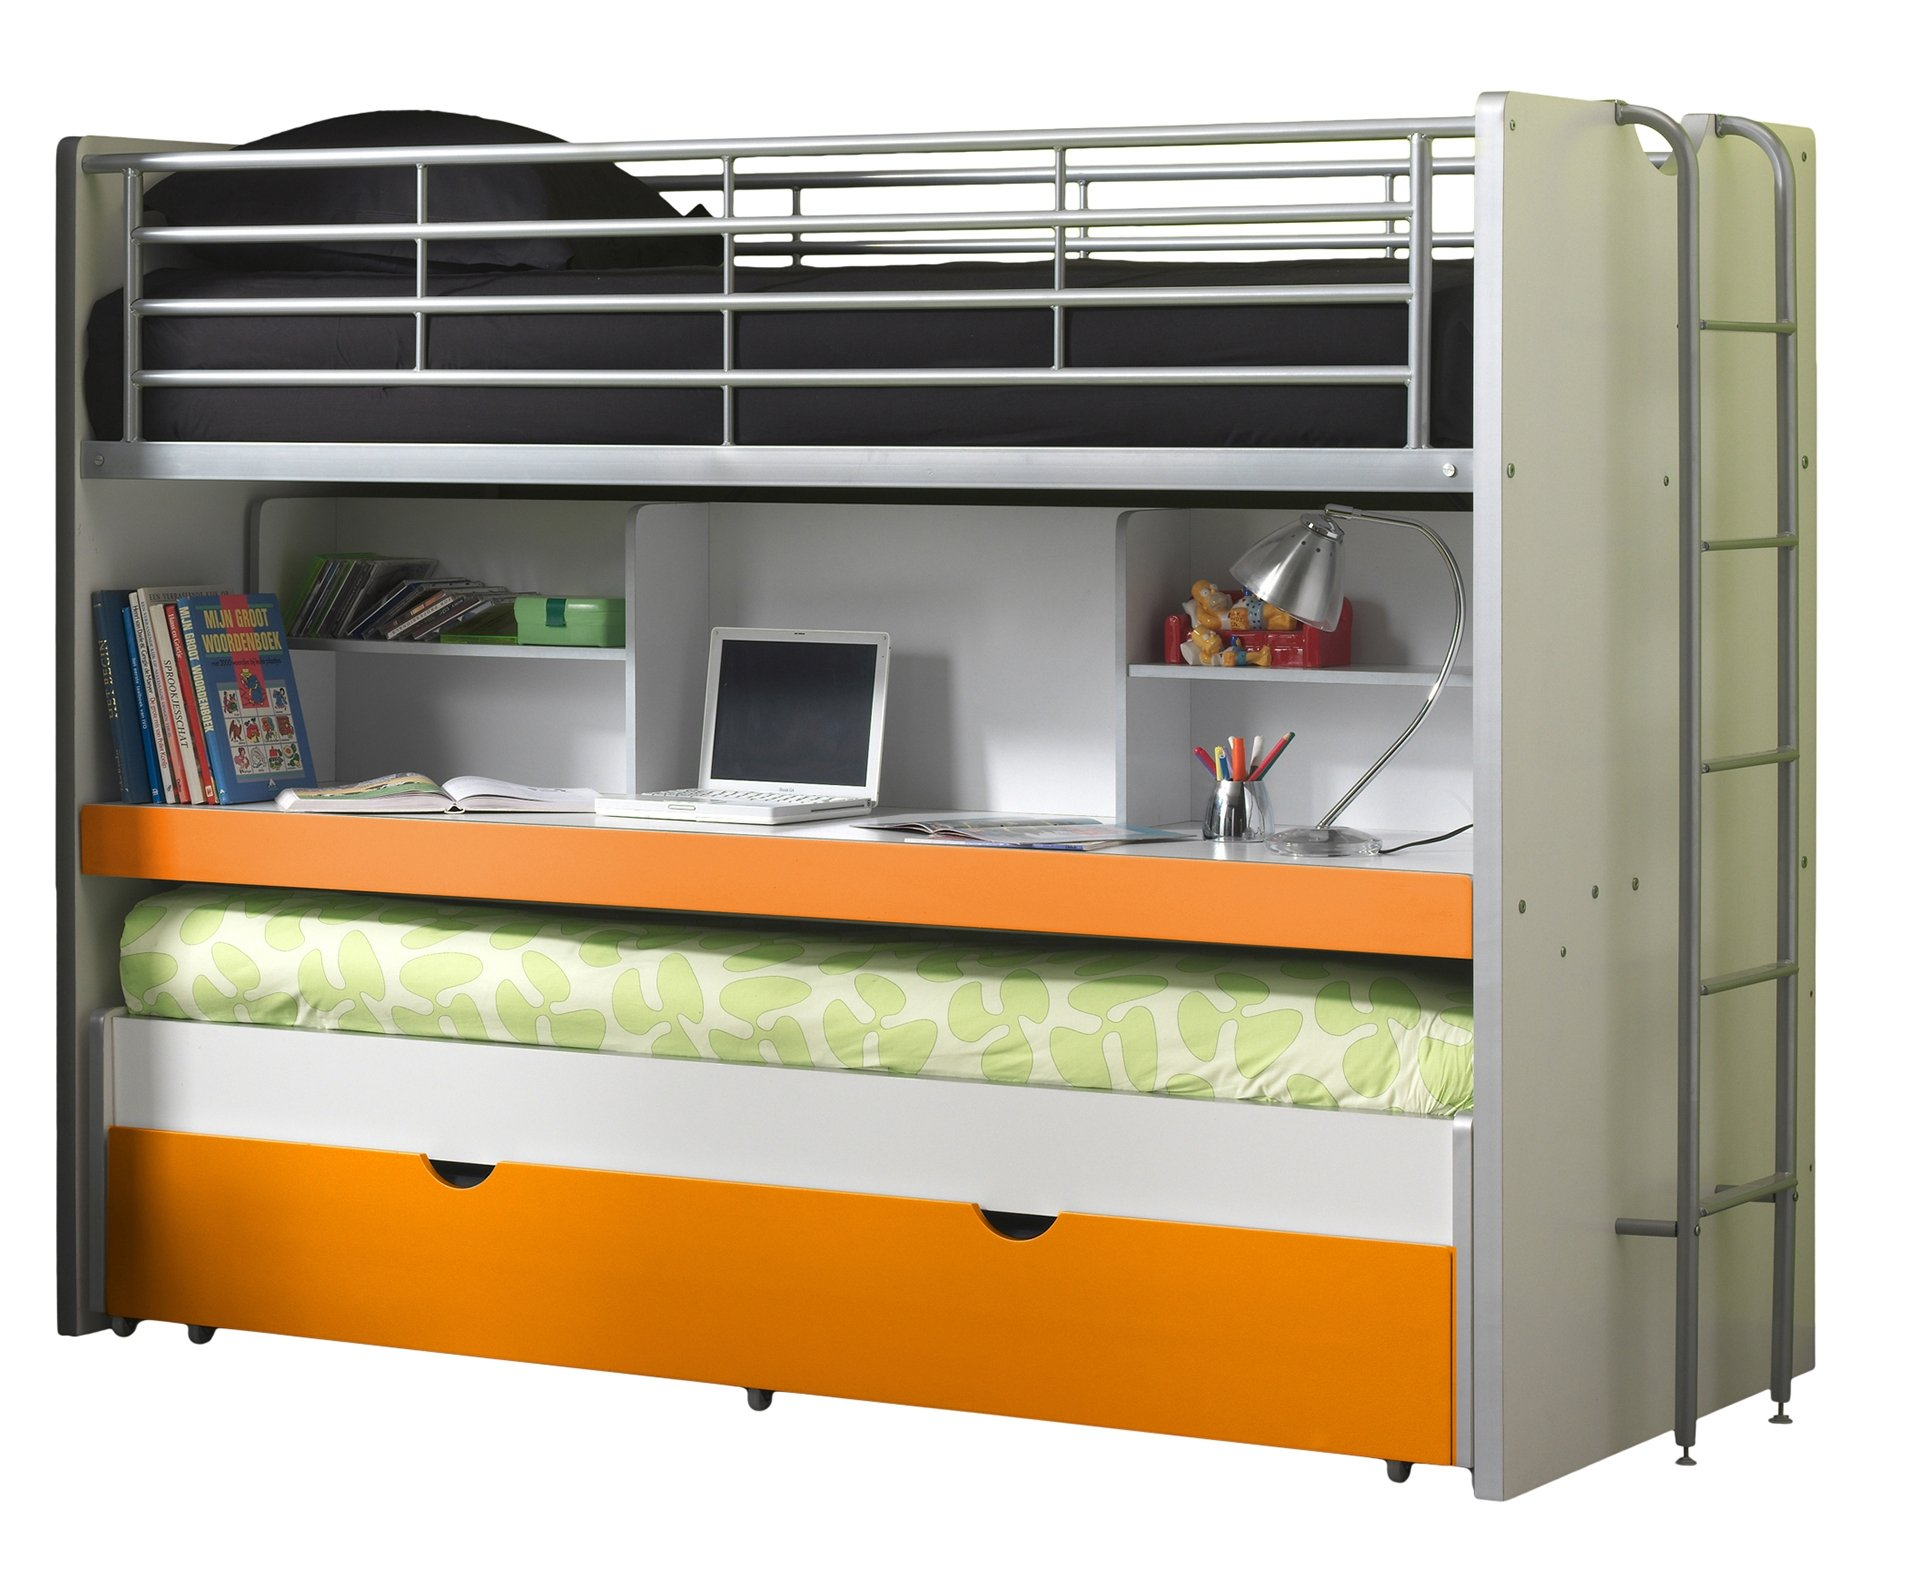 Vipack BOHS8011Bunk Beds Bonny, 207x 116x 98cm, Mattress 90x 200cm, 11, White/Orange Vipack Cabin bed with 2Sleeping surfaces 90x 200cm and 1drawer. Extendable Work Surface. Chipboard White MDF fronts and varnish with fall protection 1